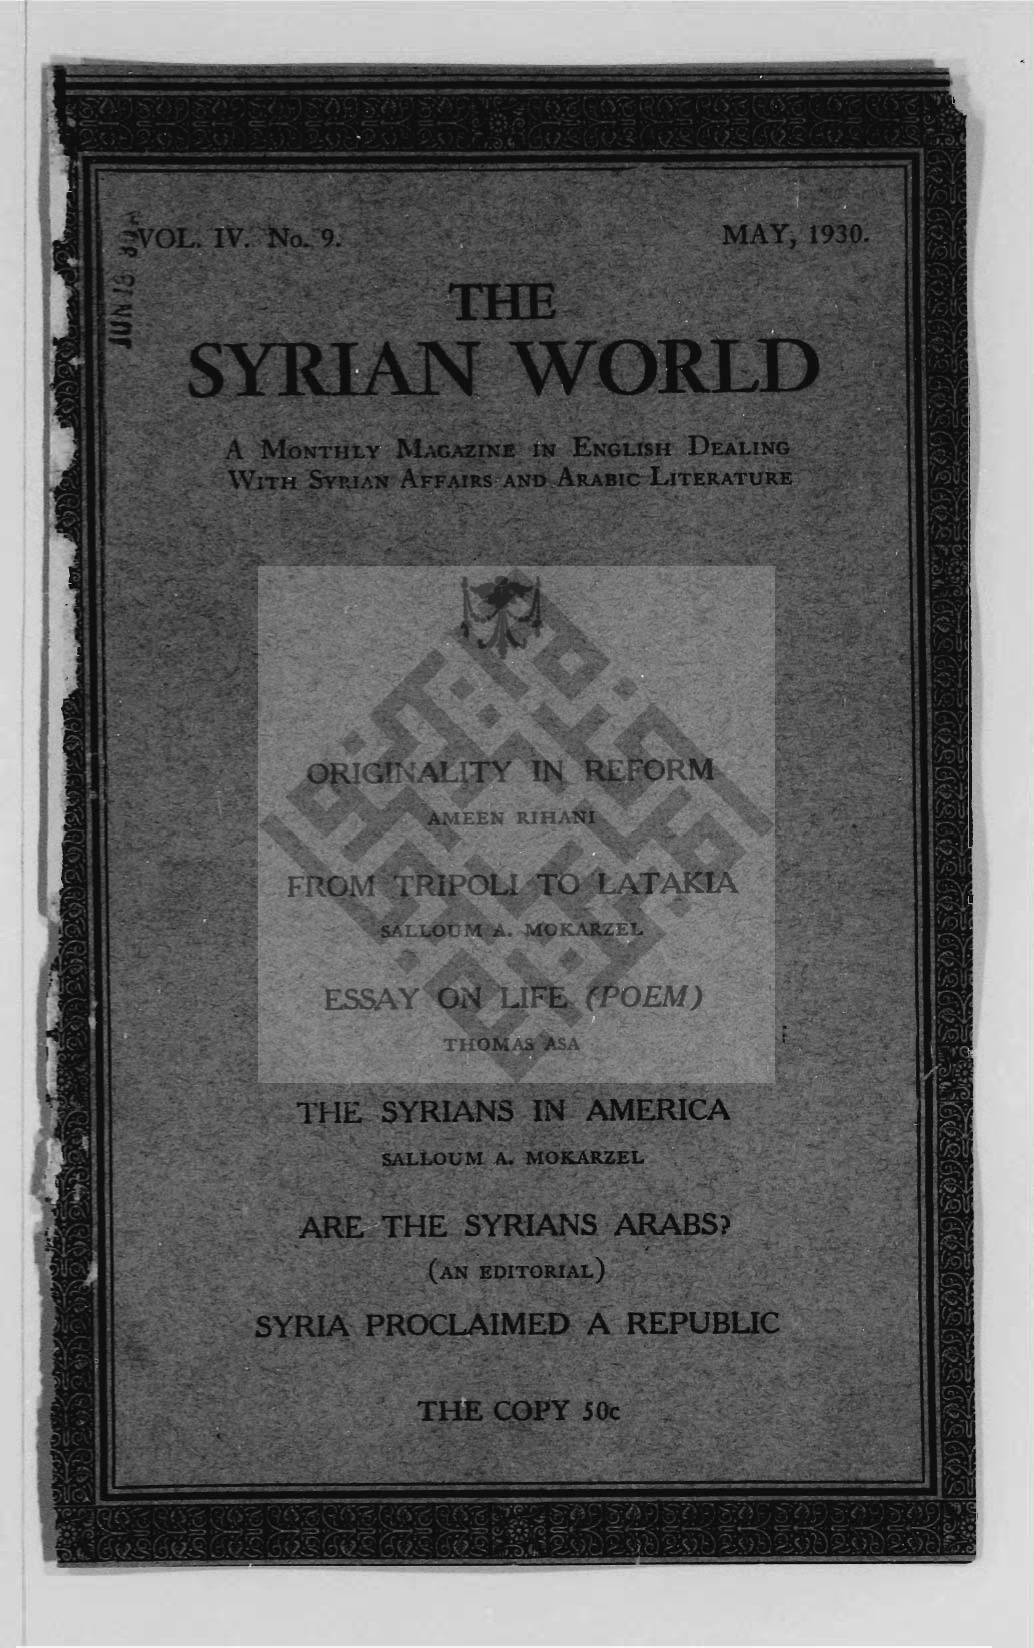 On the Art of Writing, The Syrian World, 4, 9, May 1930